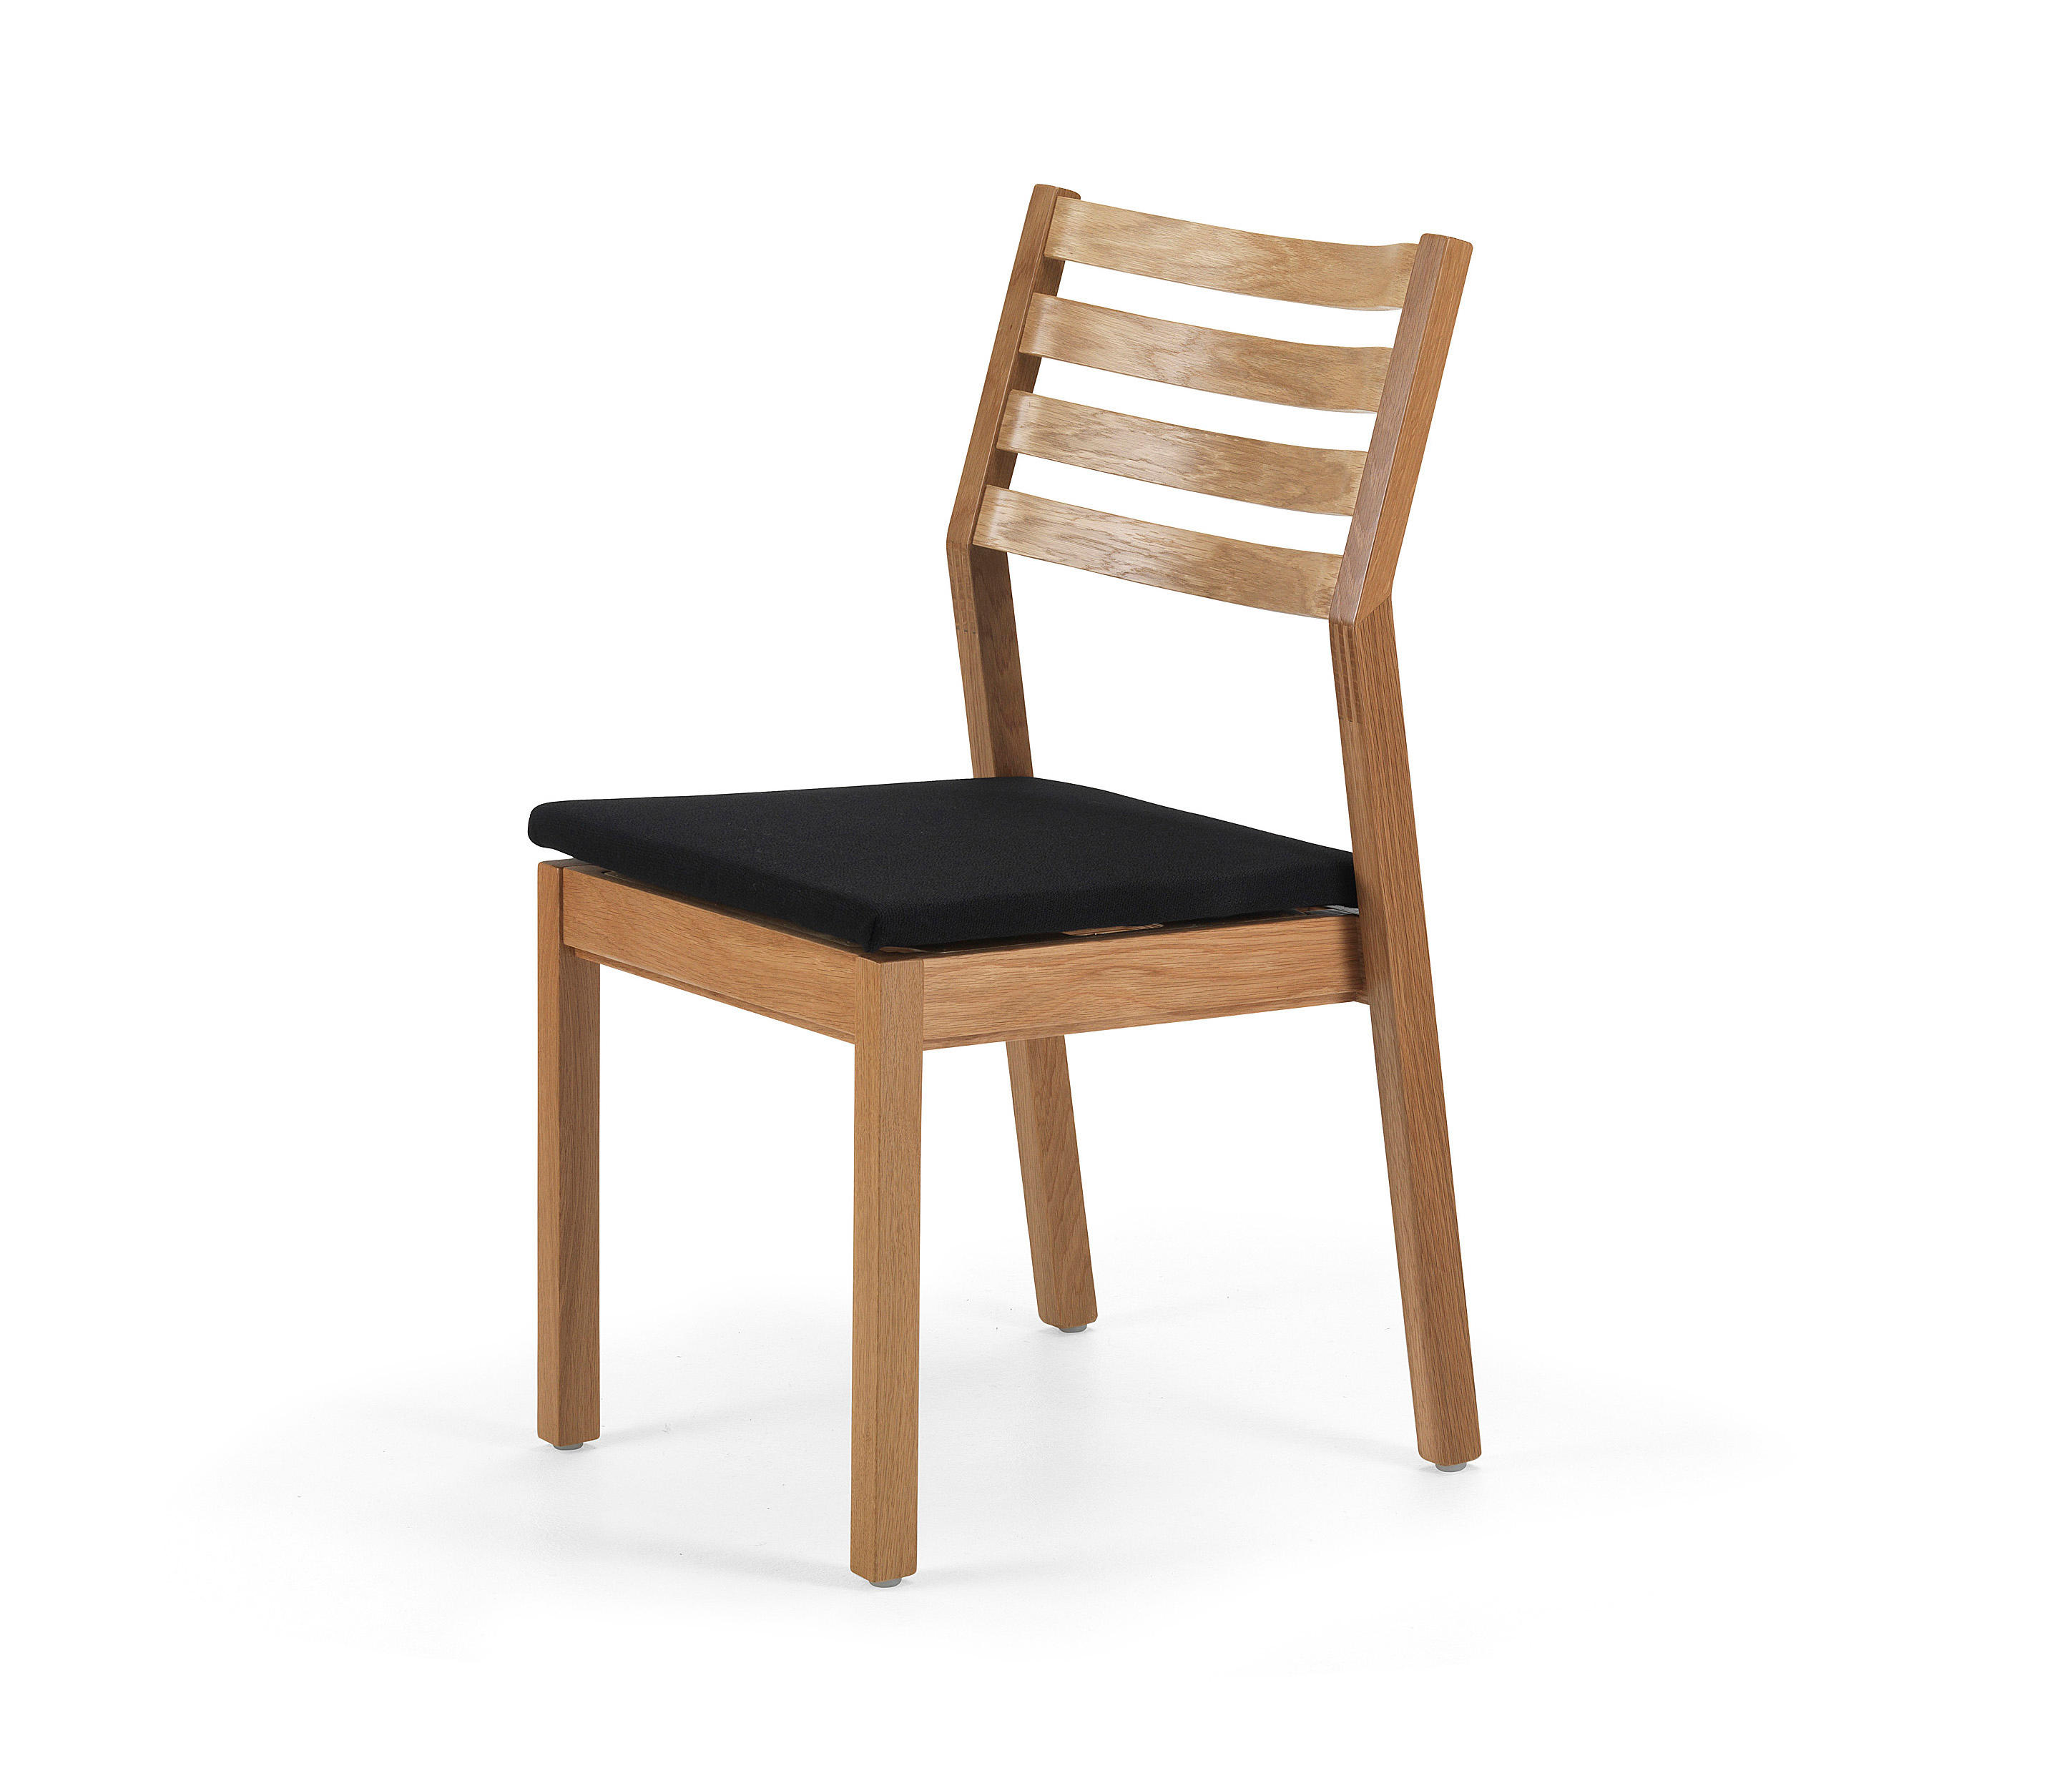 Modus chair stackable sillas para ancianos de helland for Sillas para duchar ancianos